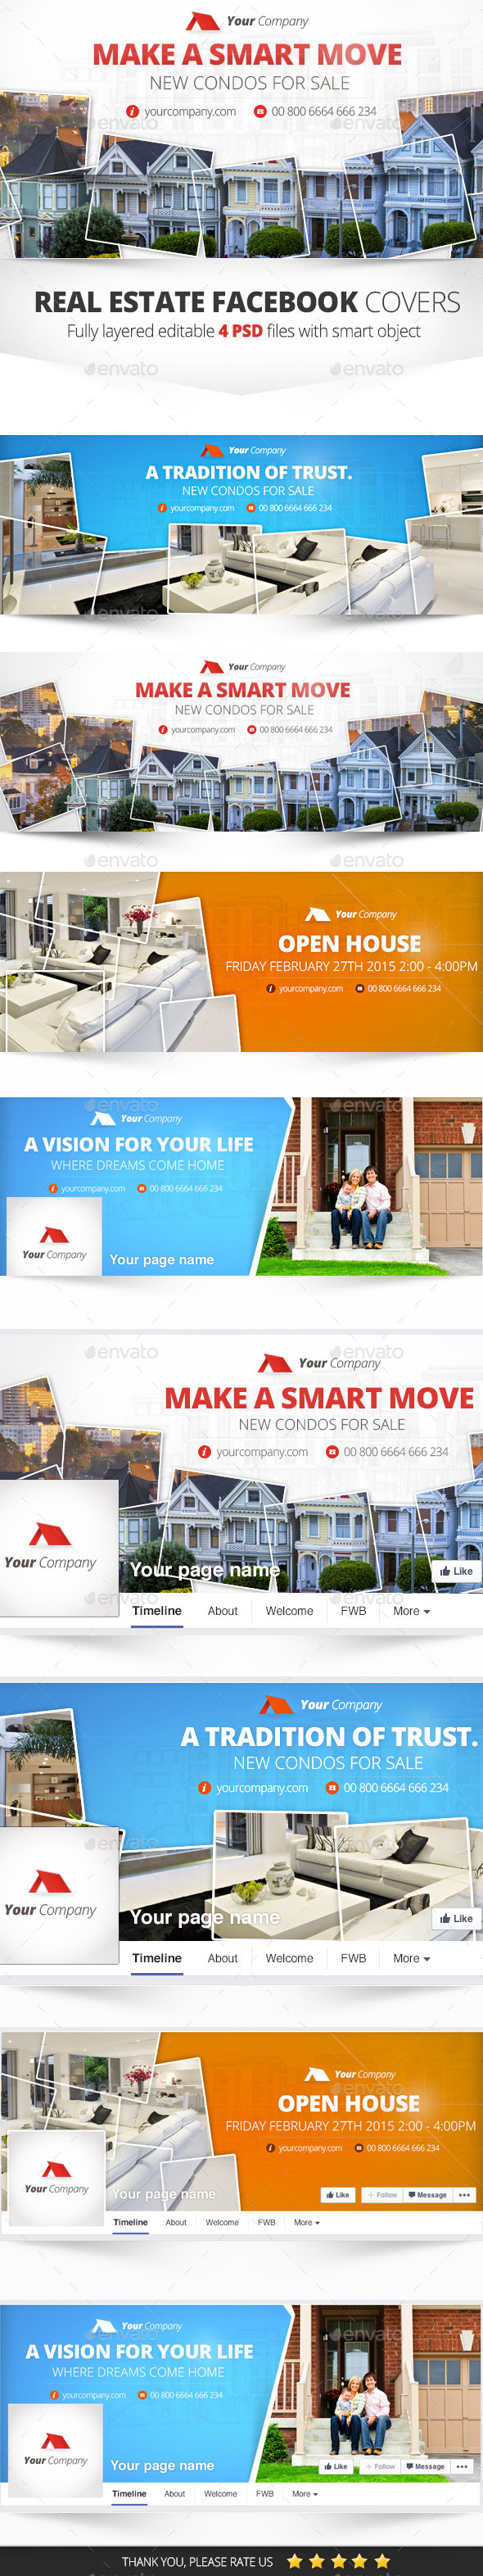 GraphicRiver Real Estate Facebook Cover 4 PSD 10289564